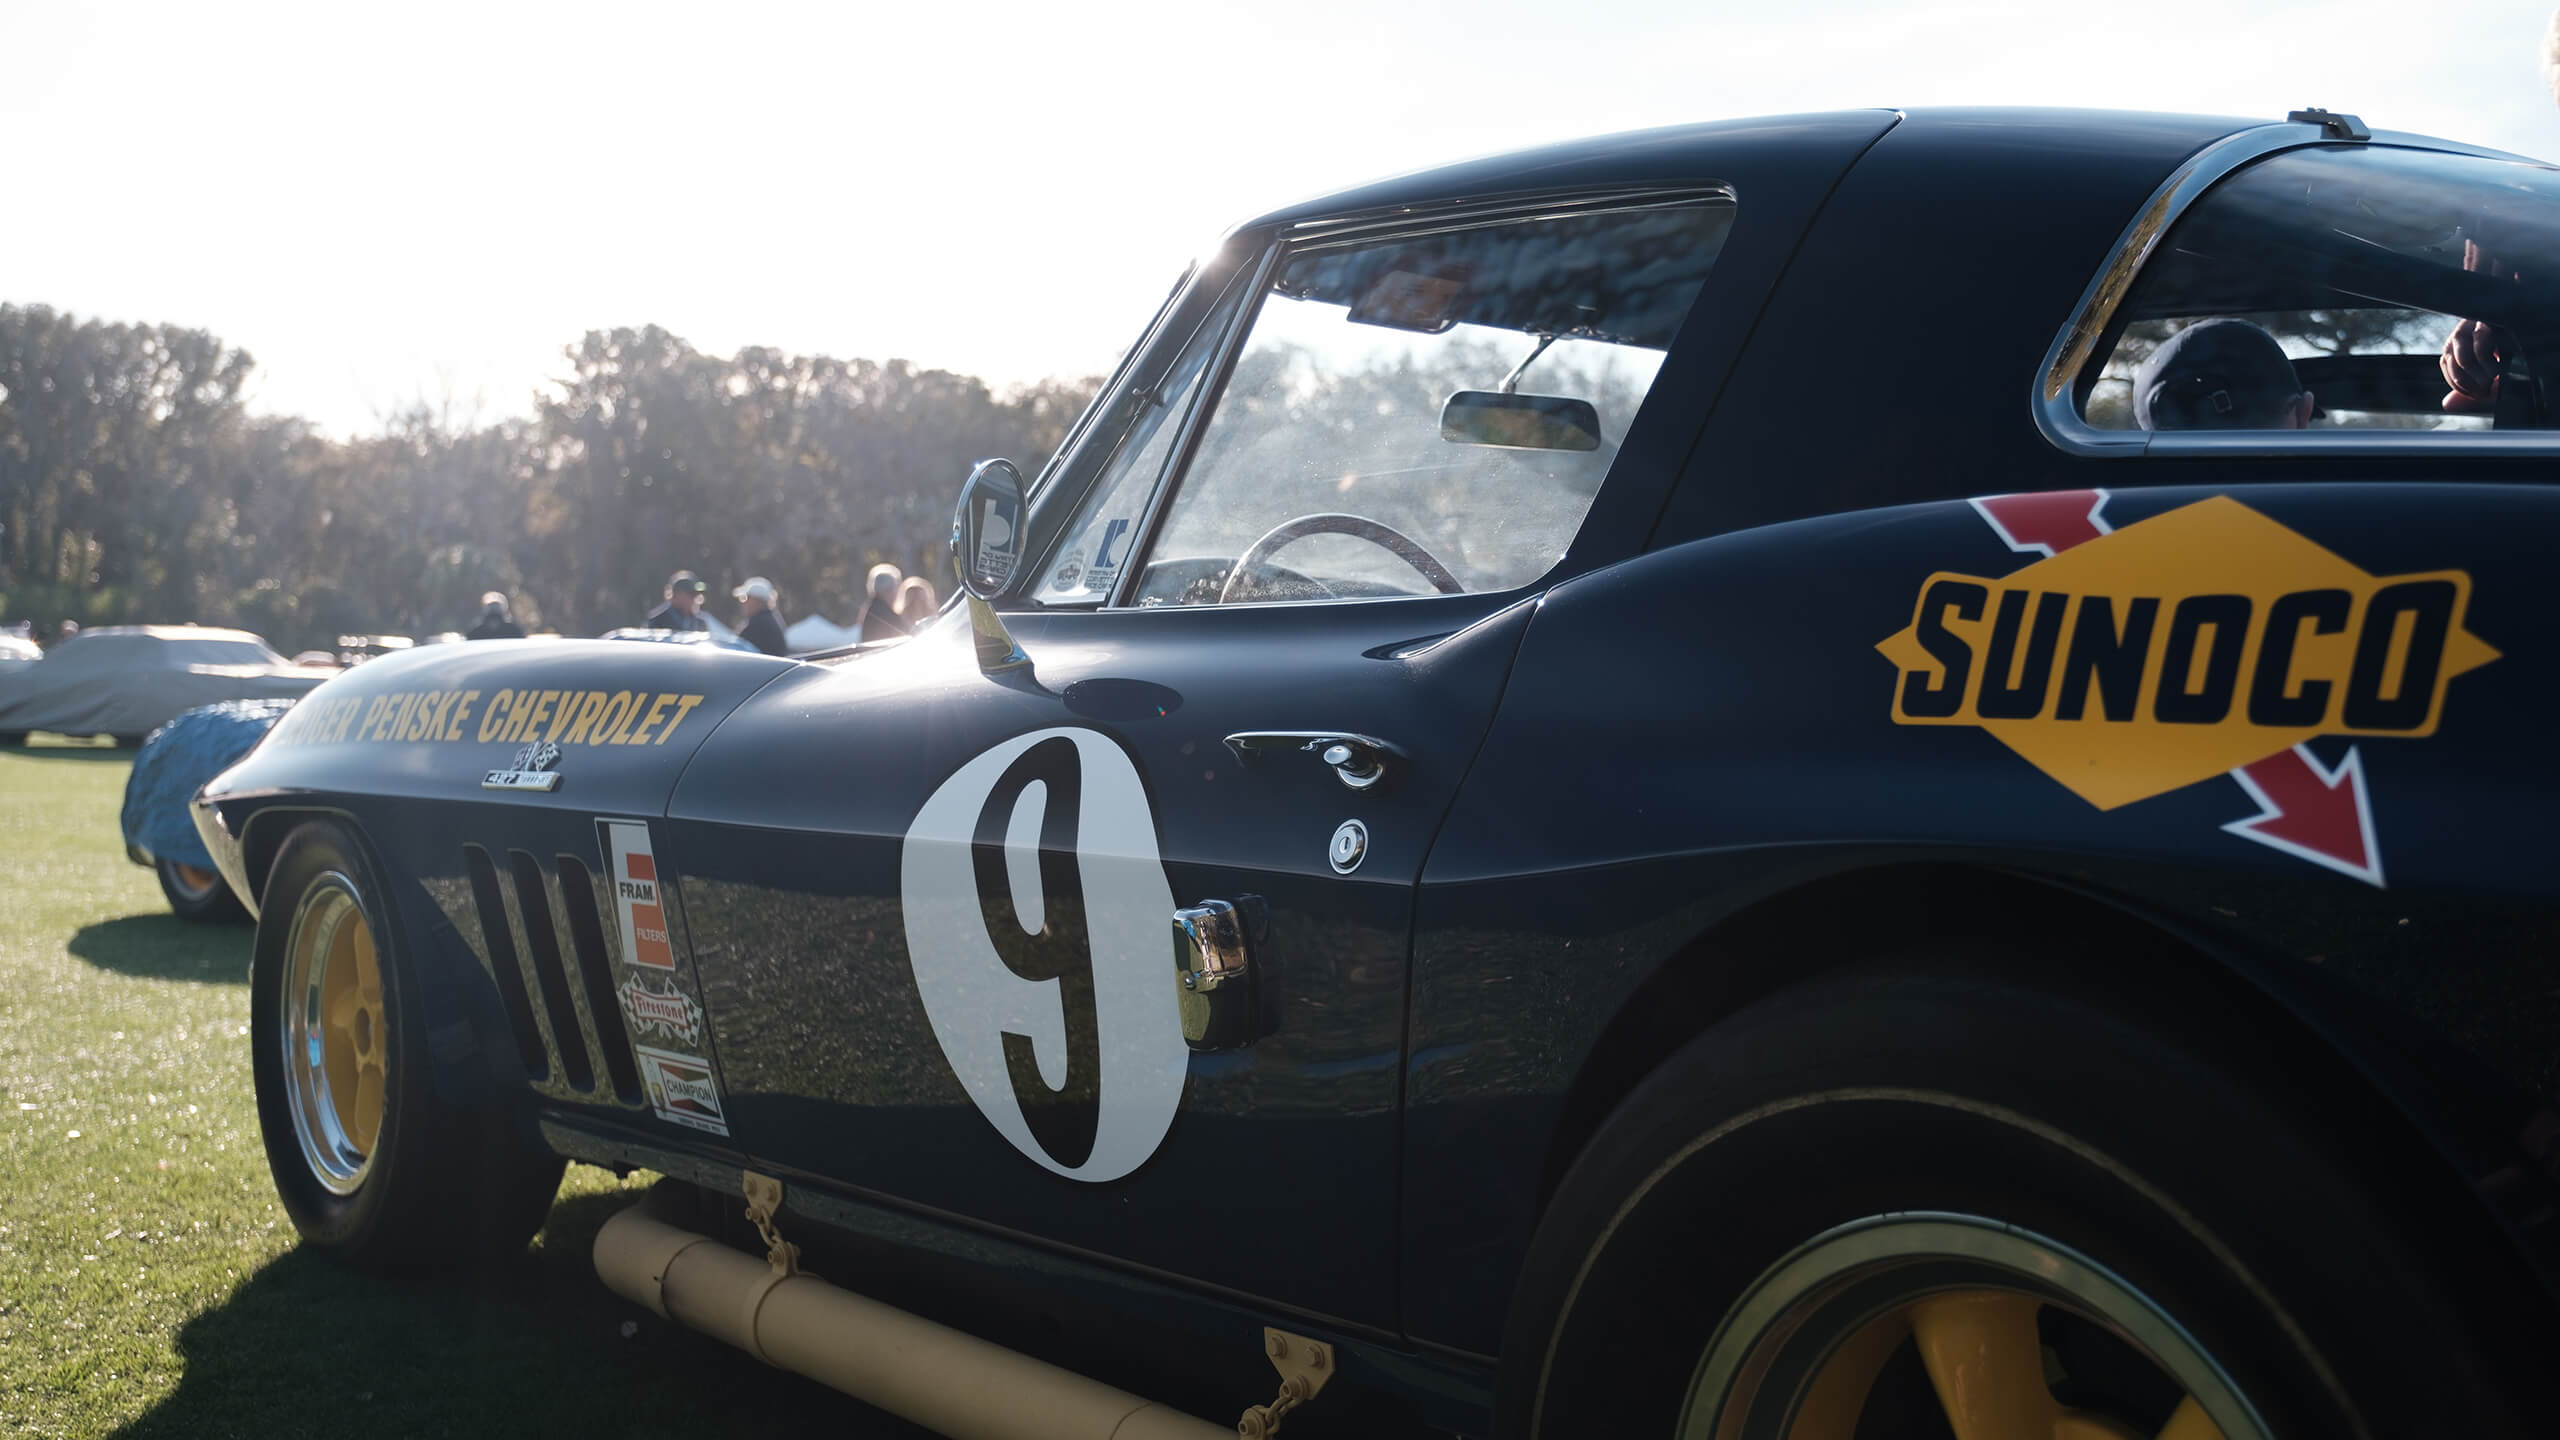 The Amelia Island Concours salutes The Captain